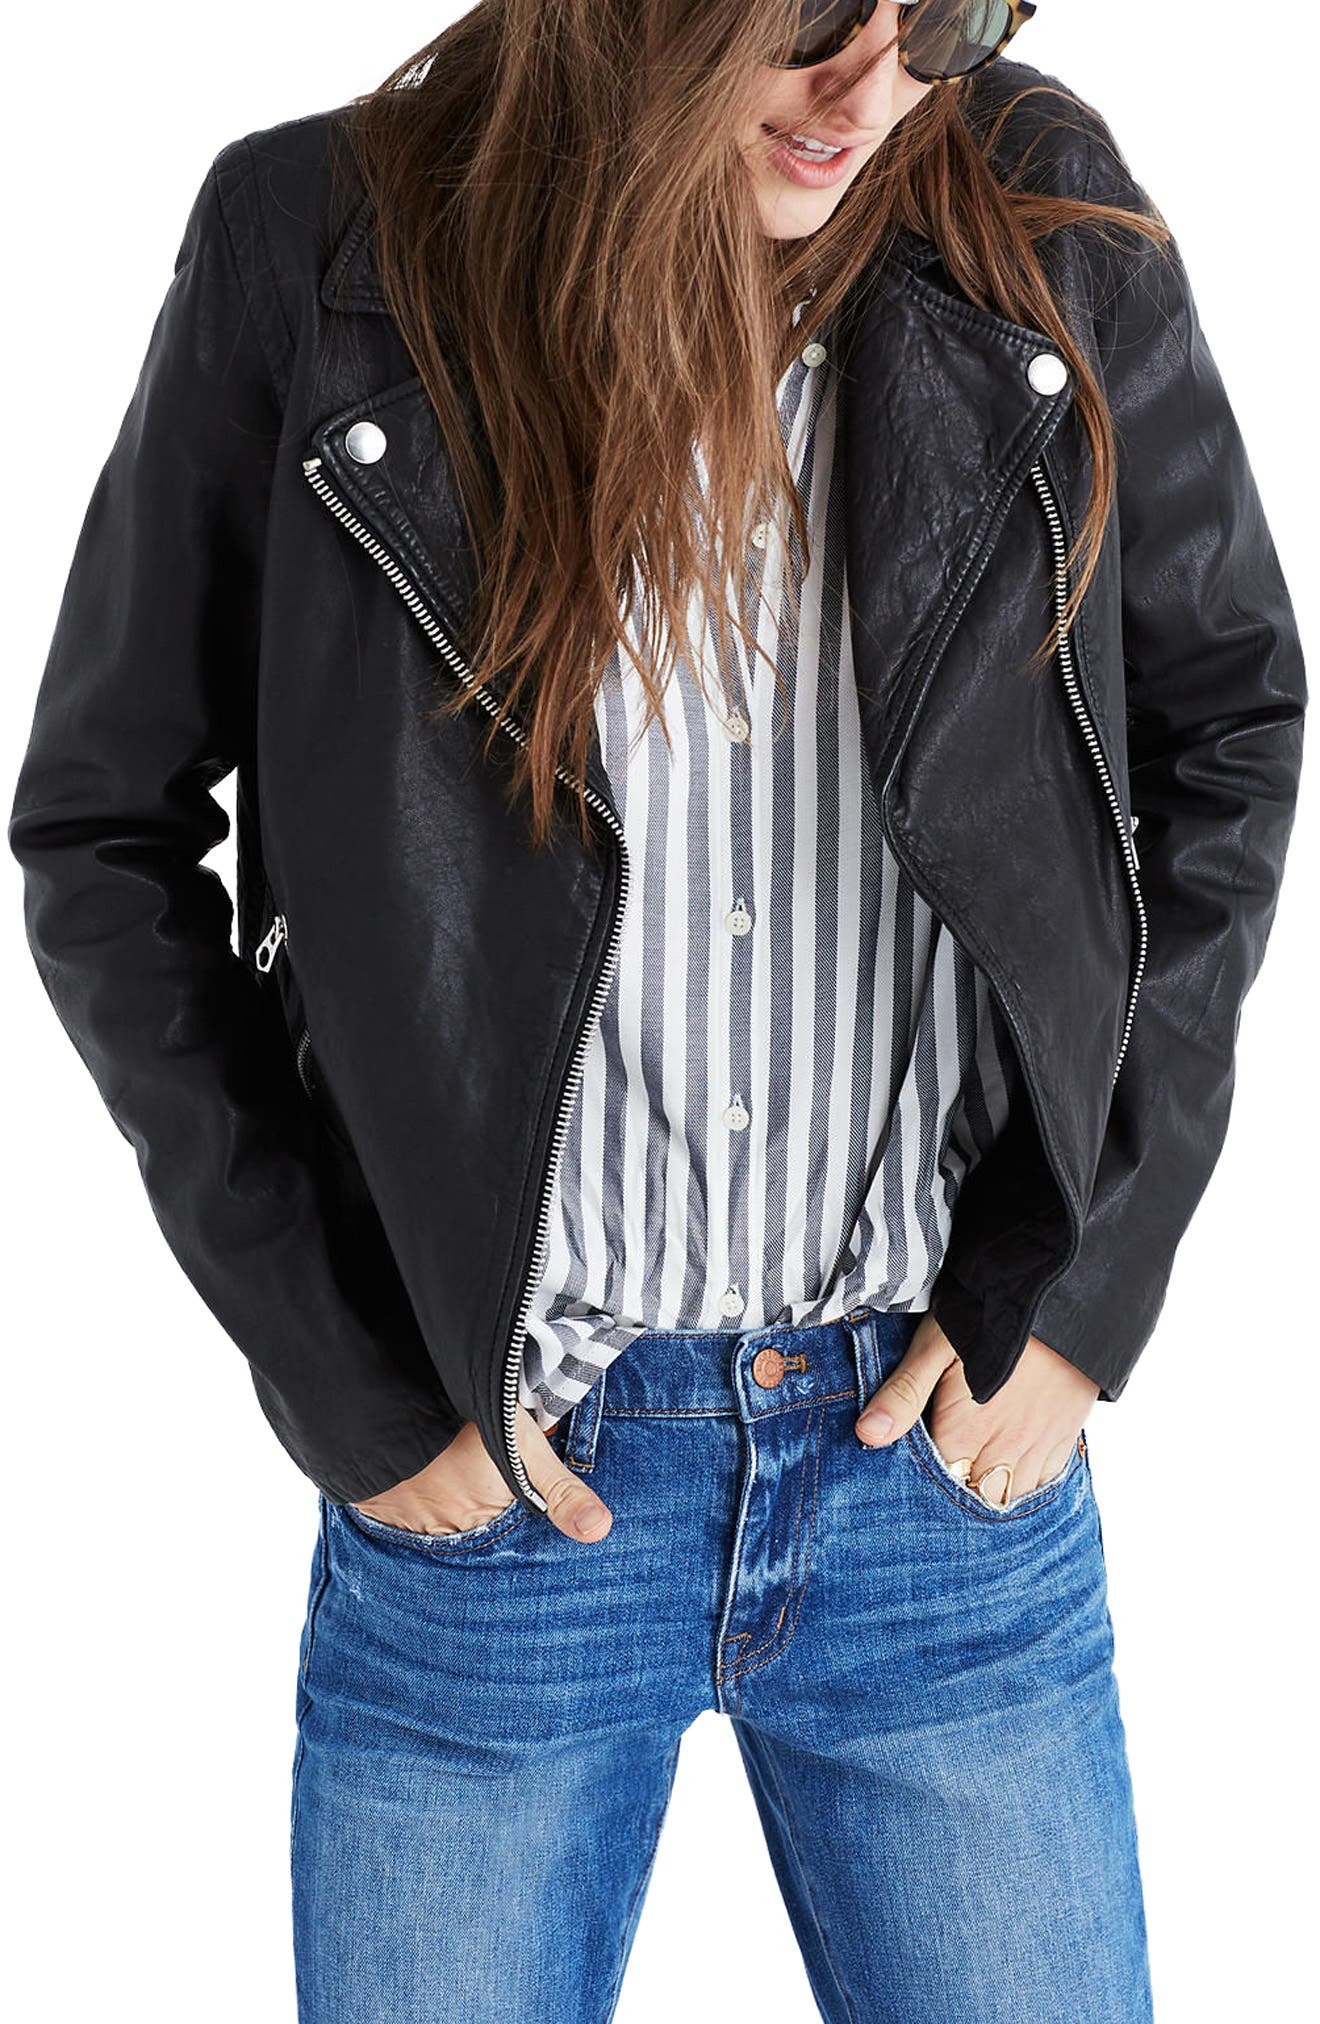 Main Image - Madewell Washed Leather Moto Jacket